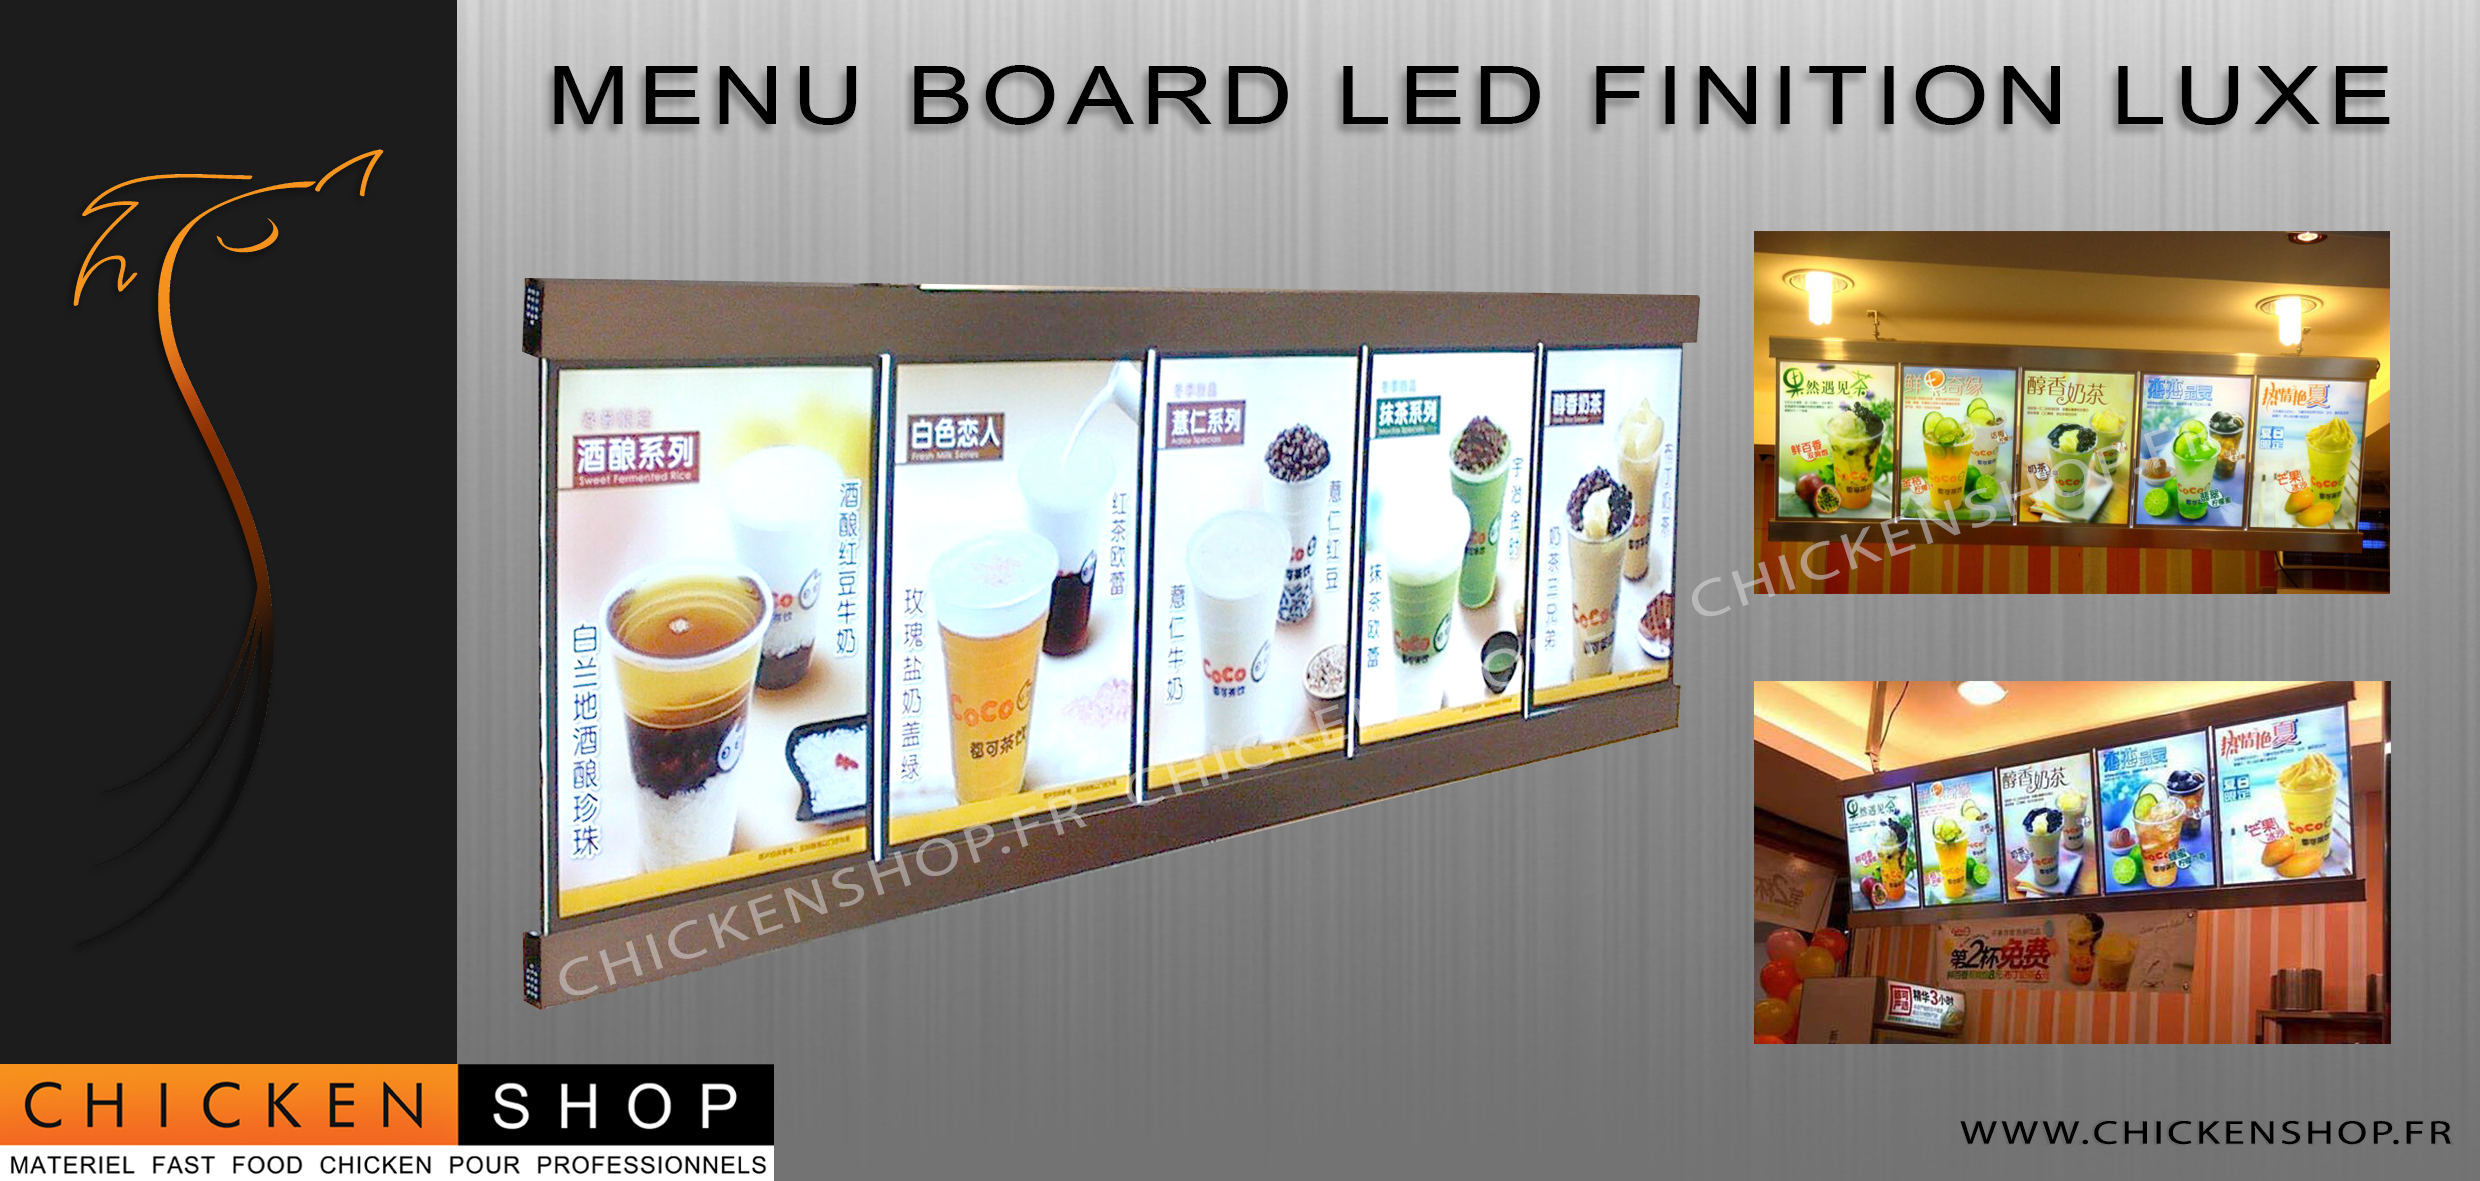 Menu Board LED Finition Luxe